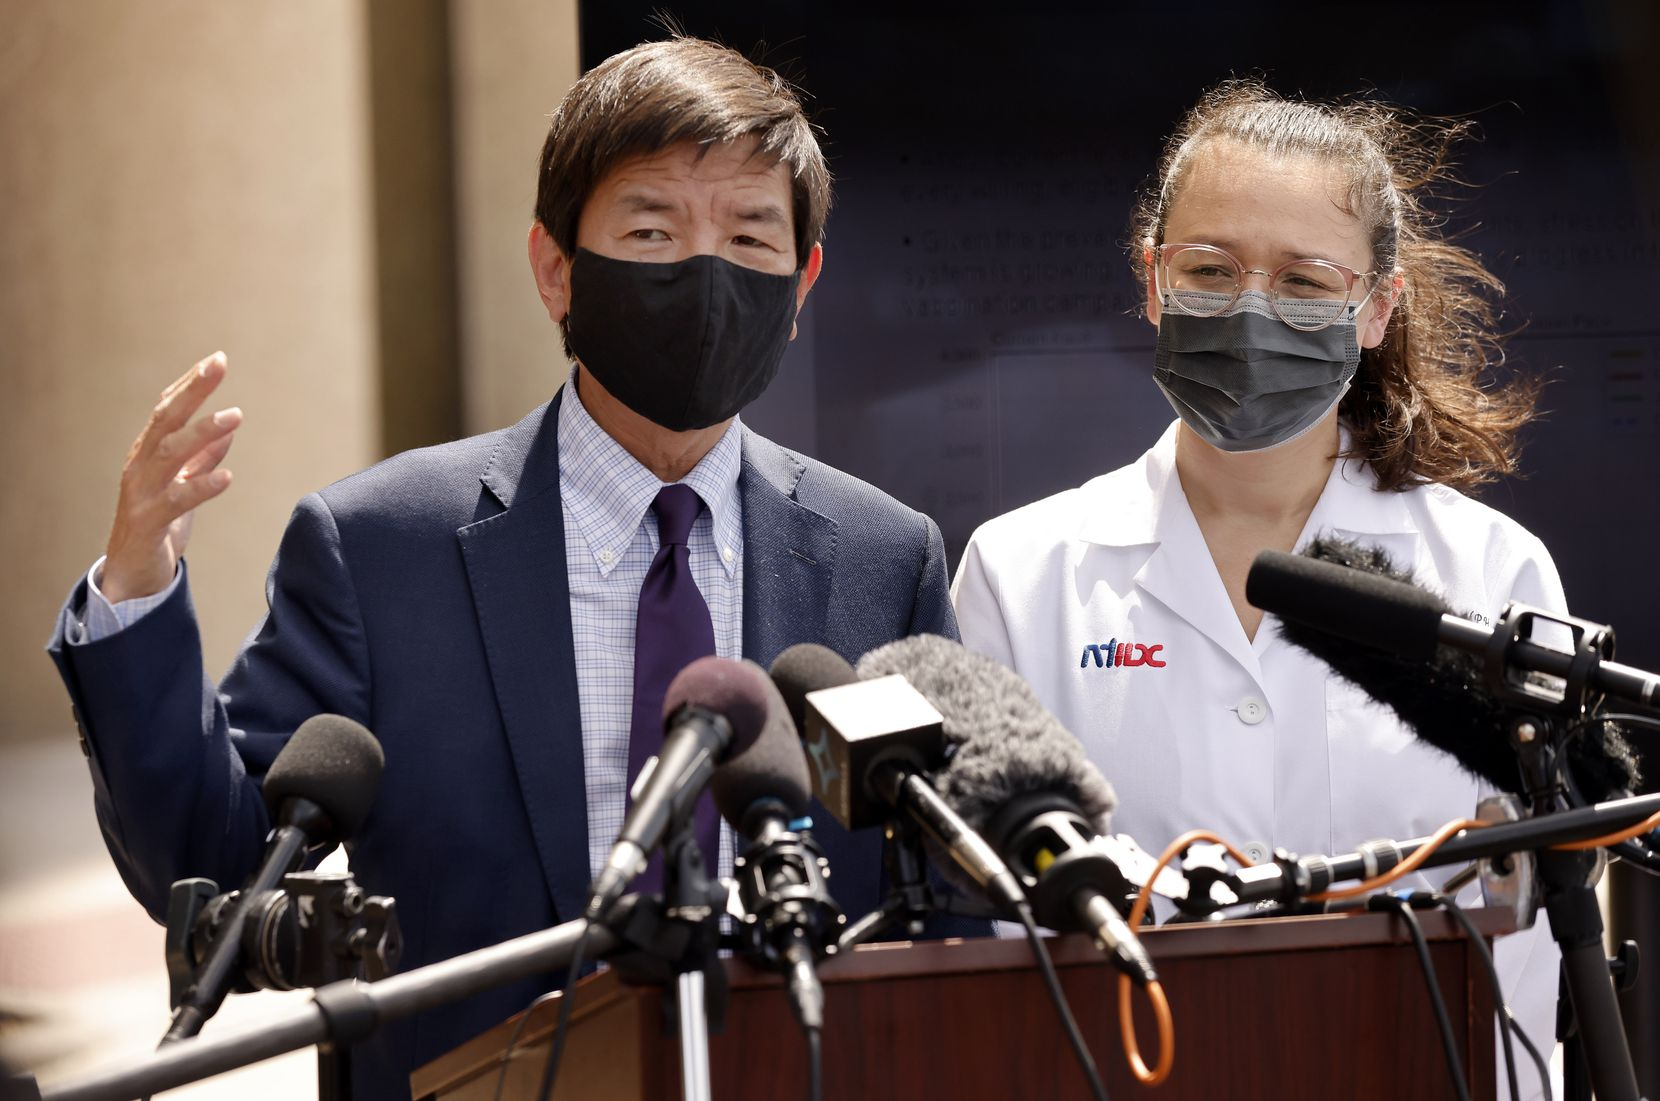 Dallas County Health and Human Services Director Dr. Philip Huang (left) and Dr. Emma Dishner of the North Texas Infectious Disease Consultants answered questions from the media about the current state of the coronavirus delta variant outside the county health building in Dallas on Tuesday. (Tom Fox/The Dallas Morning News)